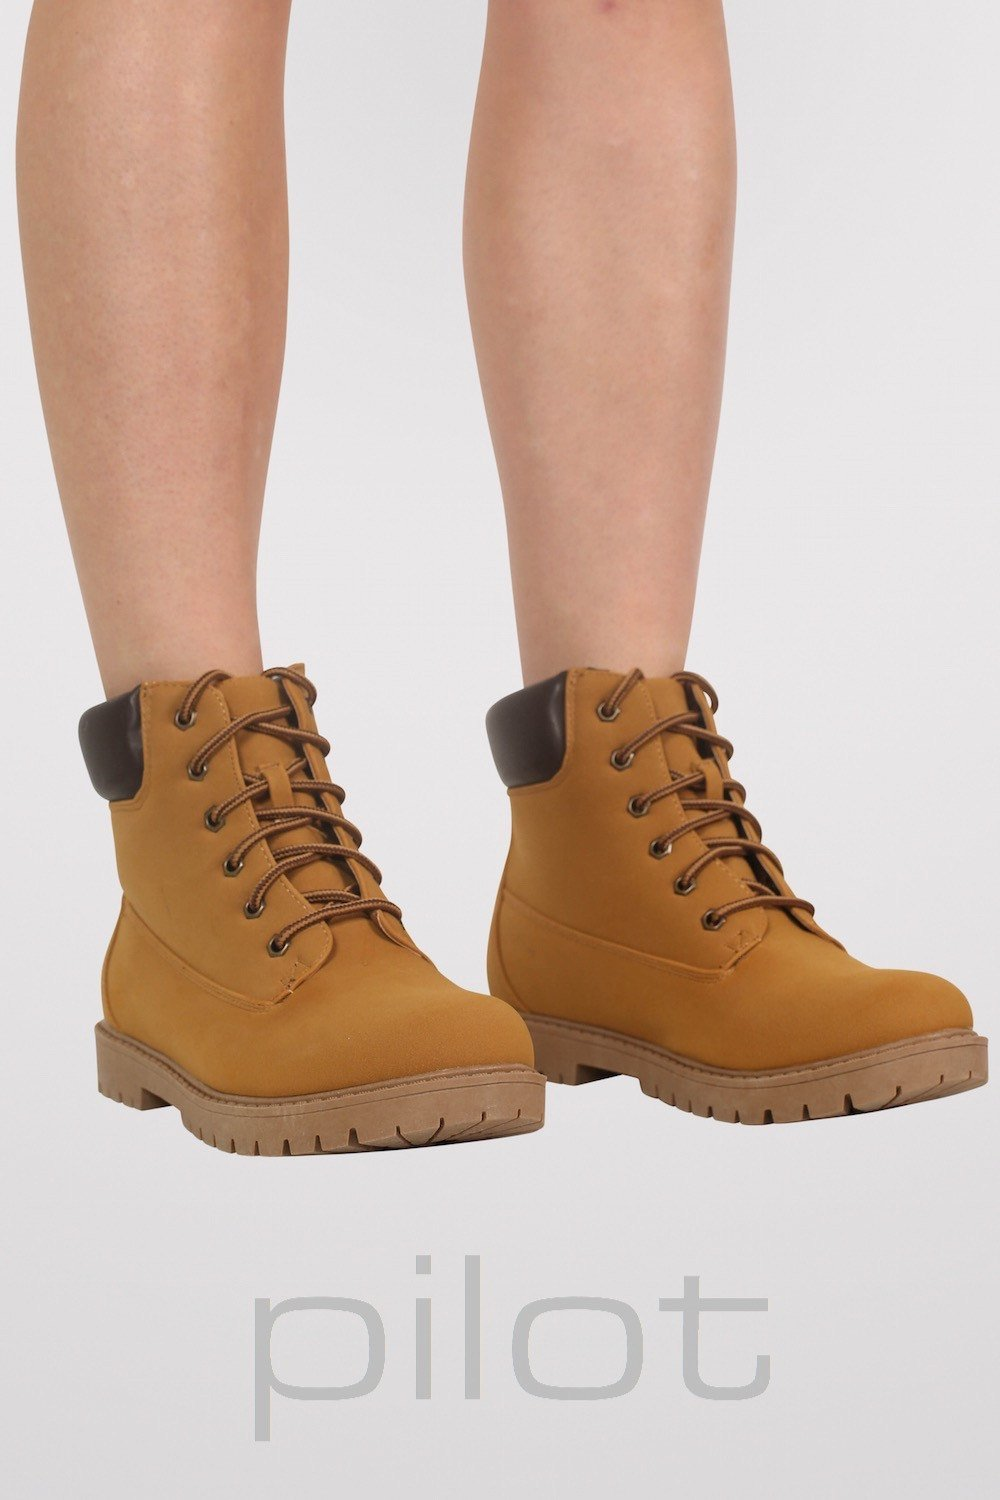 Lace Up Chukka Boots in Mustard Yellow 0